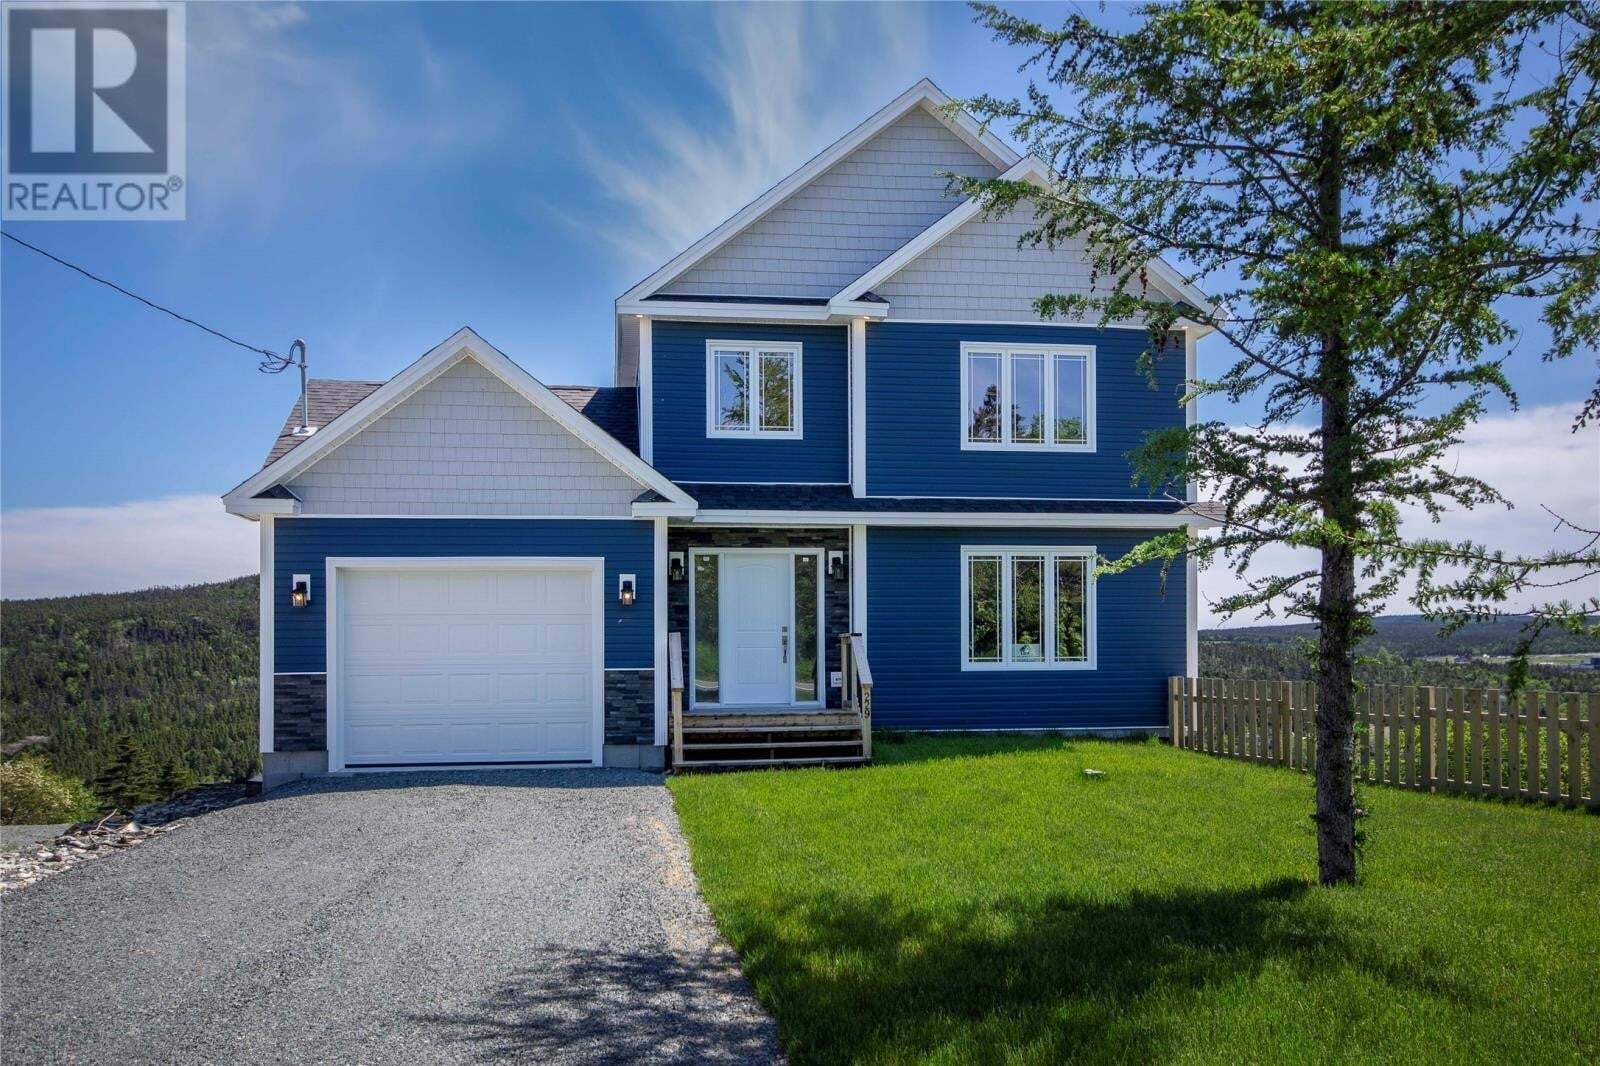 House for sale at 229 Dogberry Hill Rd Portugal Cove - St. Philips Newfoundland - MLS: 1221706